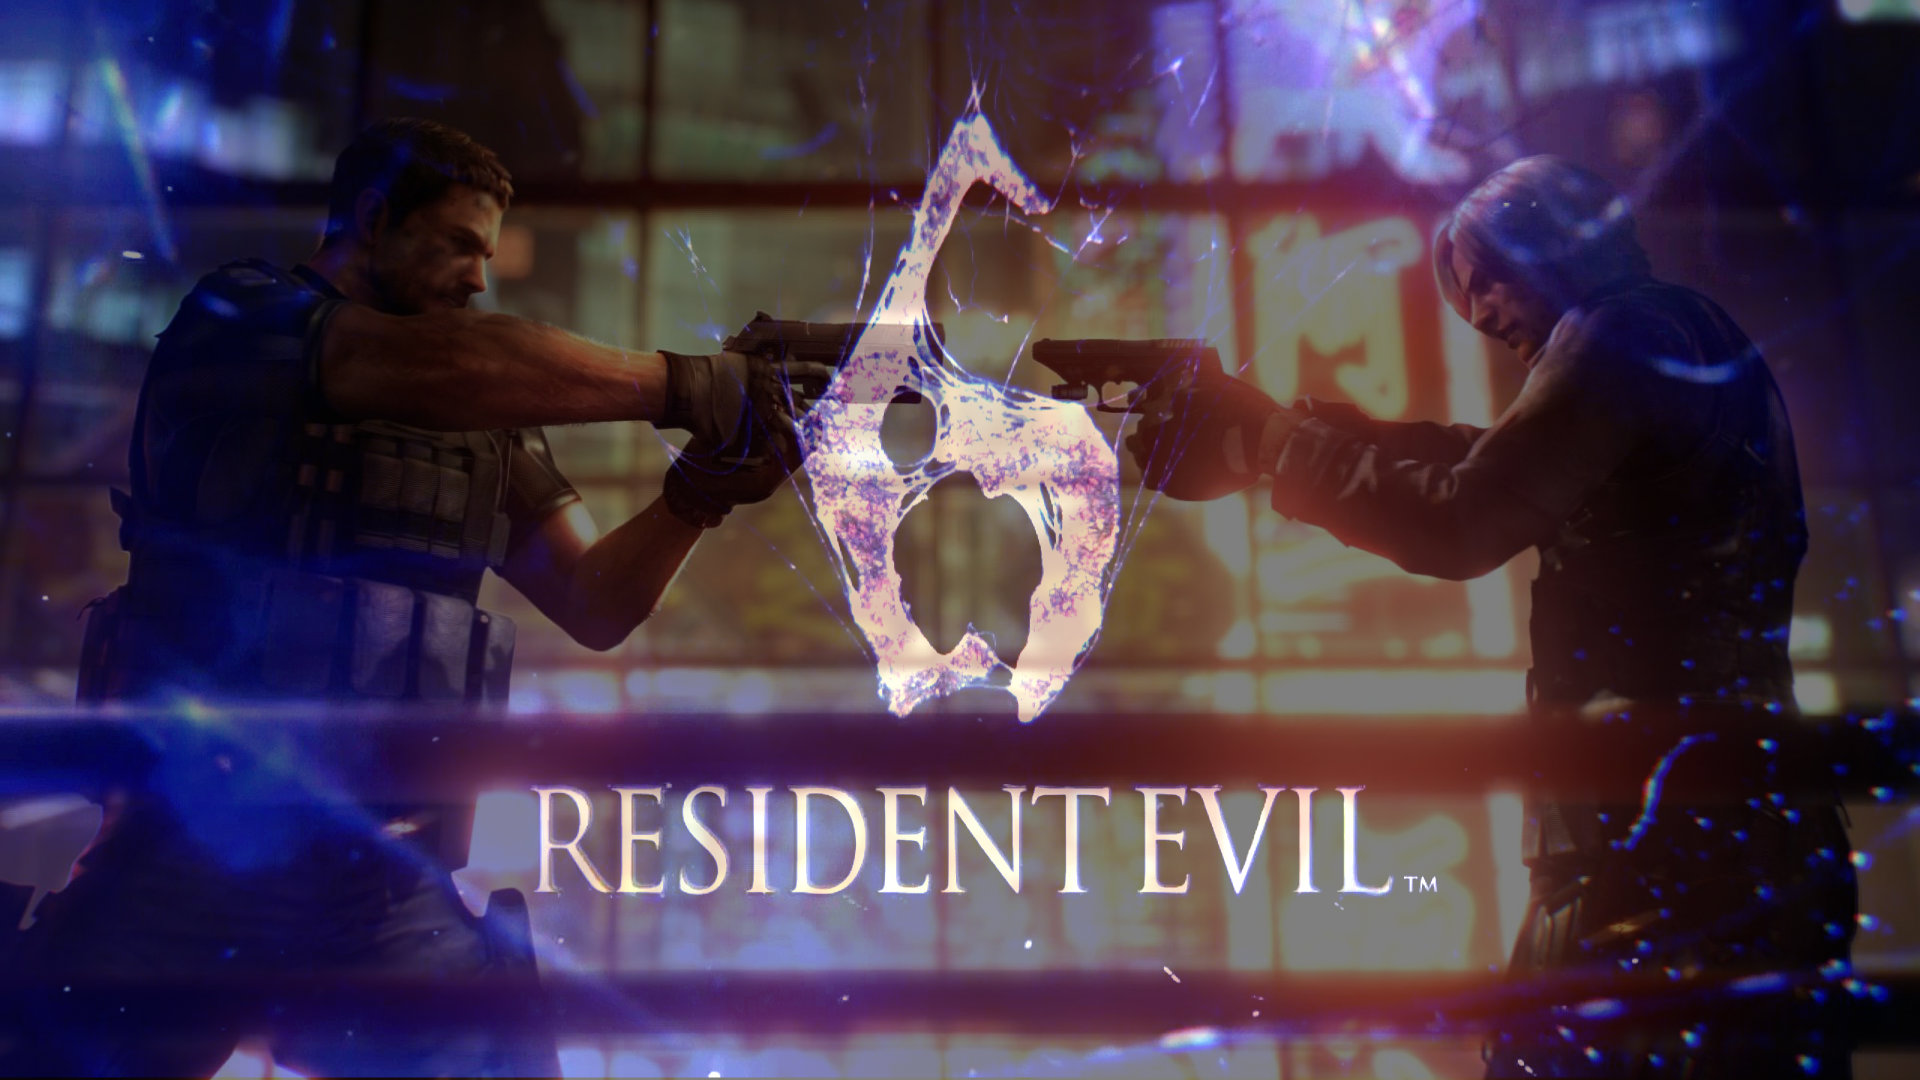 Lightning Returns Final Fantasy XIII Images RESIDENT EVIL 6 HD Wallpaper And Background Photos